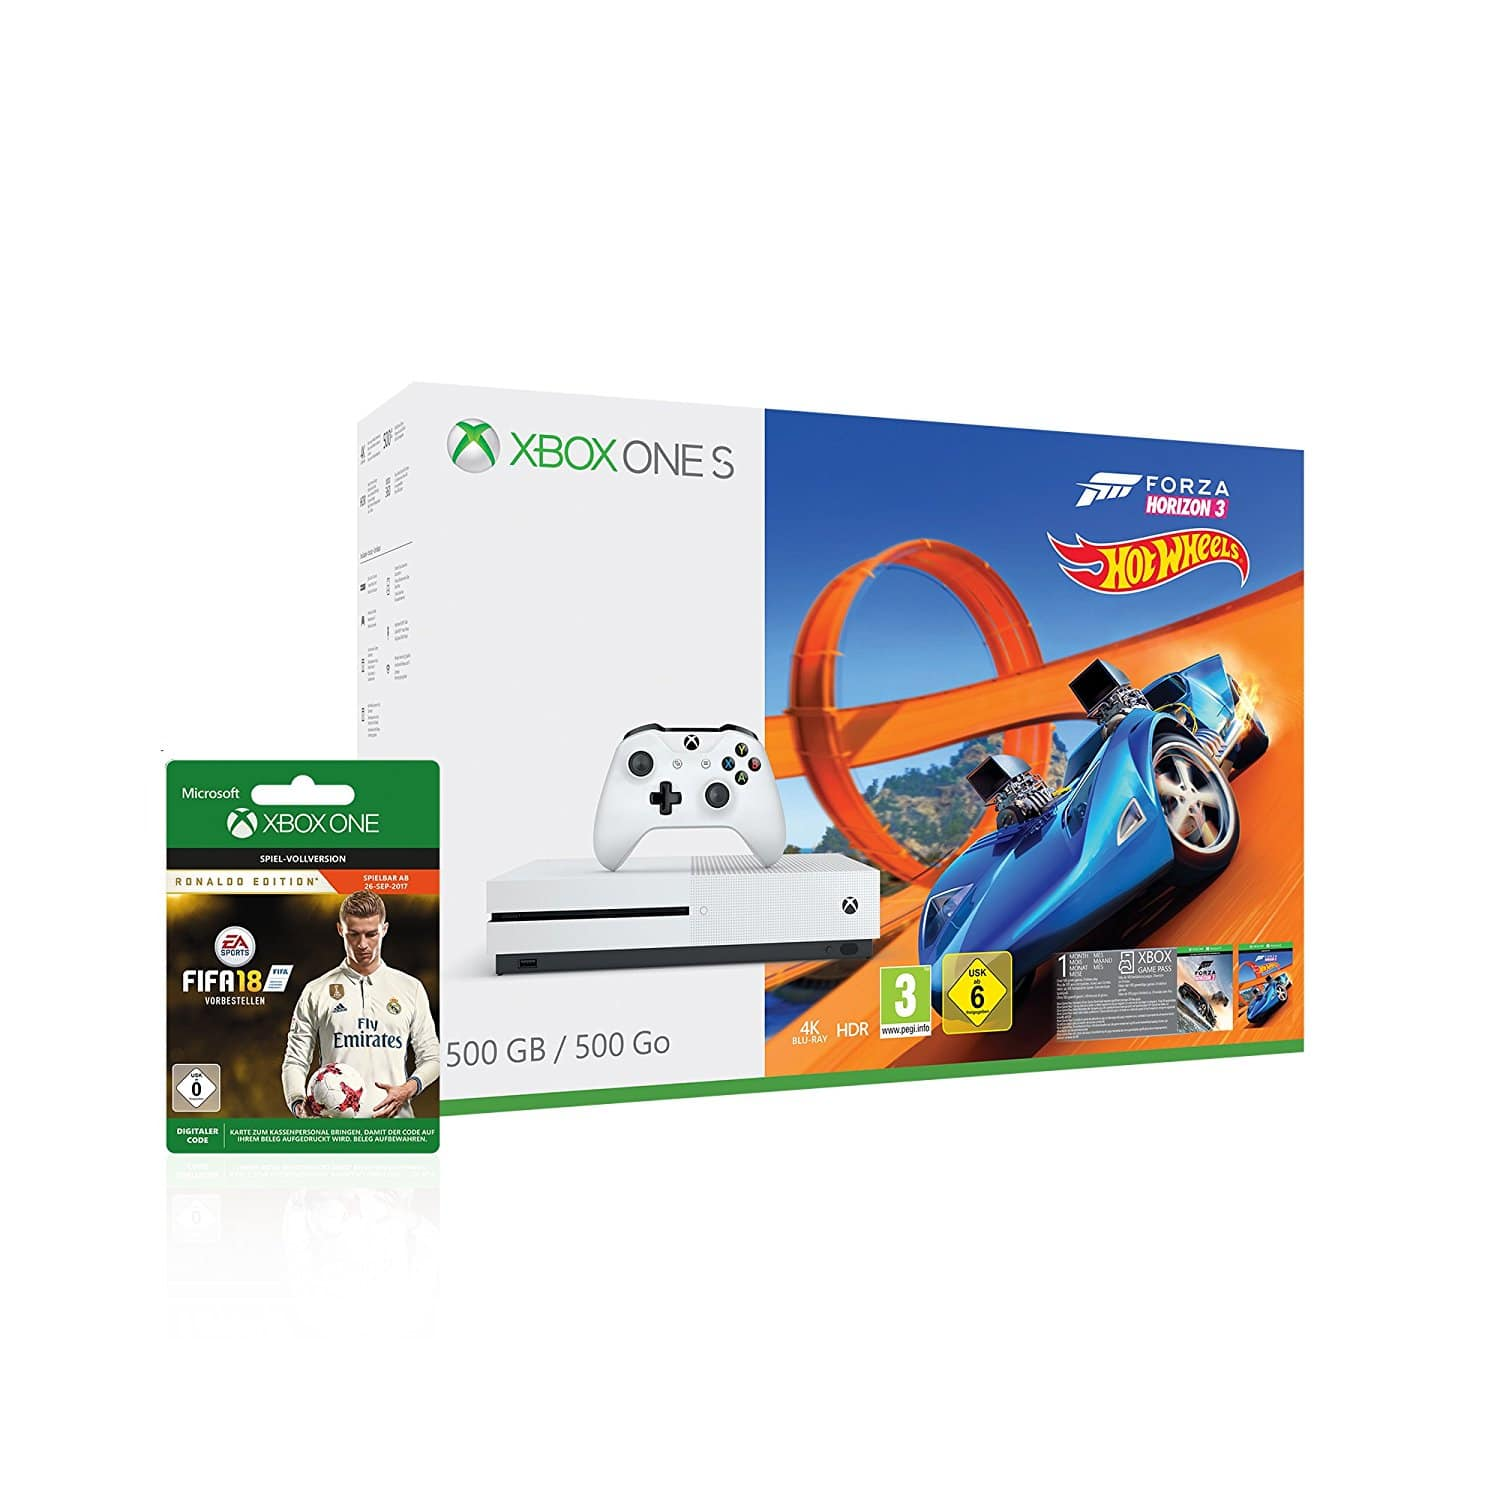 anpfiff fifa 18 im bundle mit xbox one s im sale und mehr windowsunited. Black Bedroom Furniture Sets. Home Design Ideas